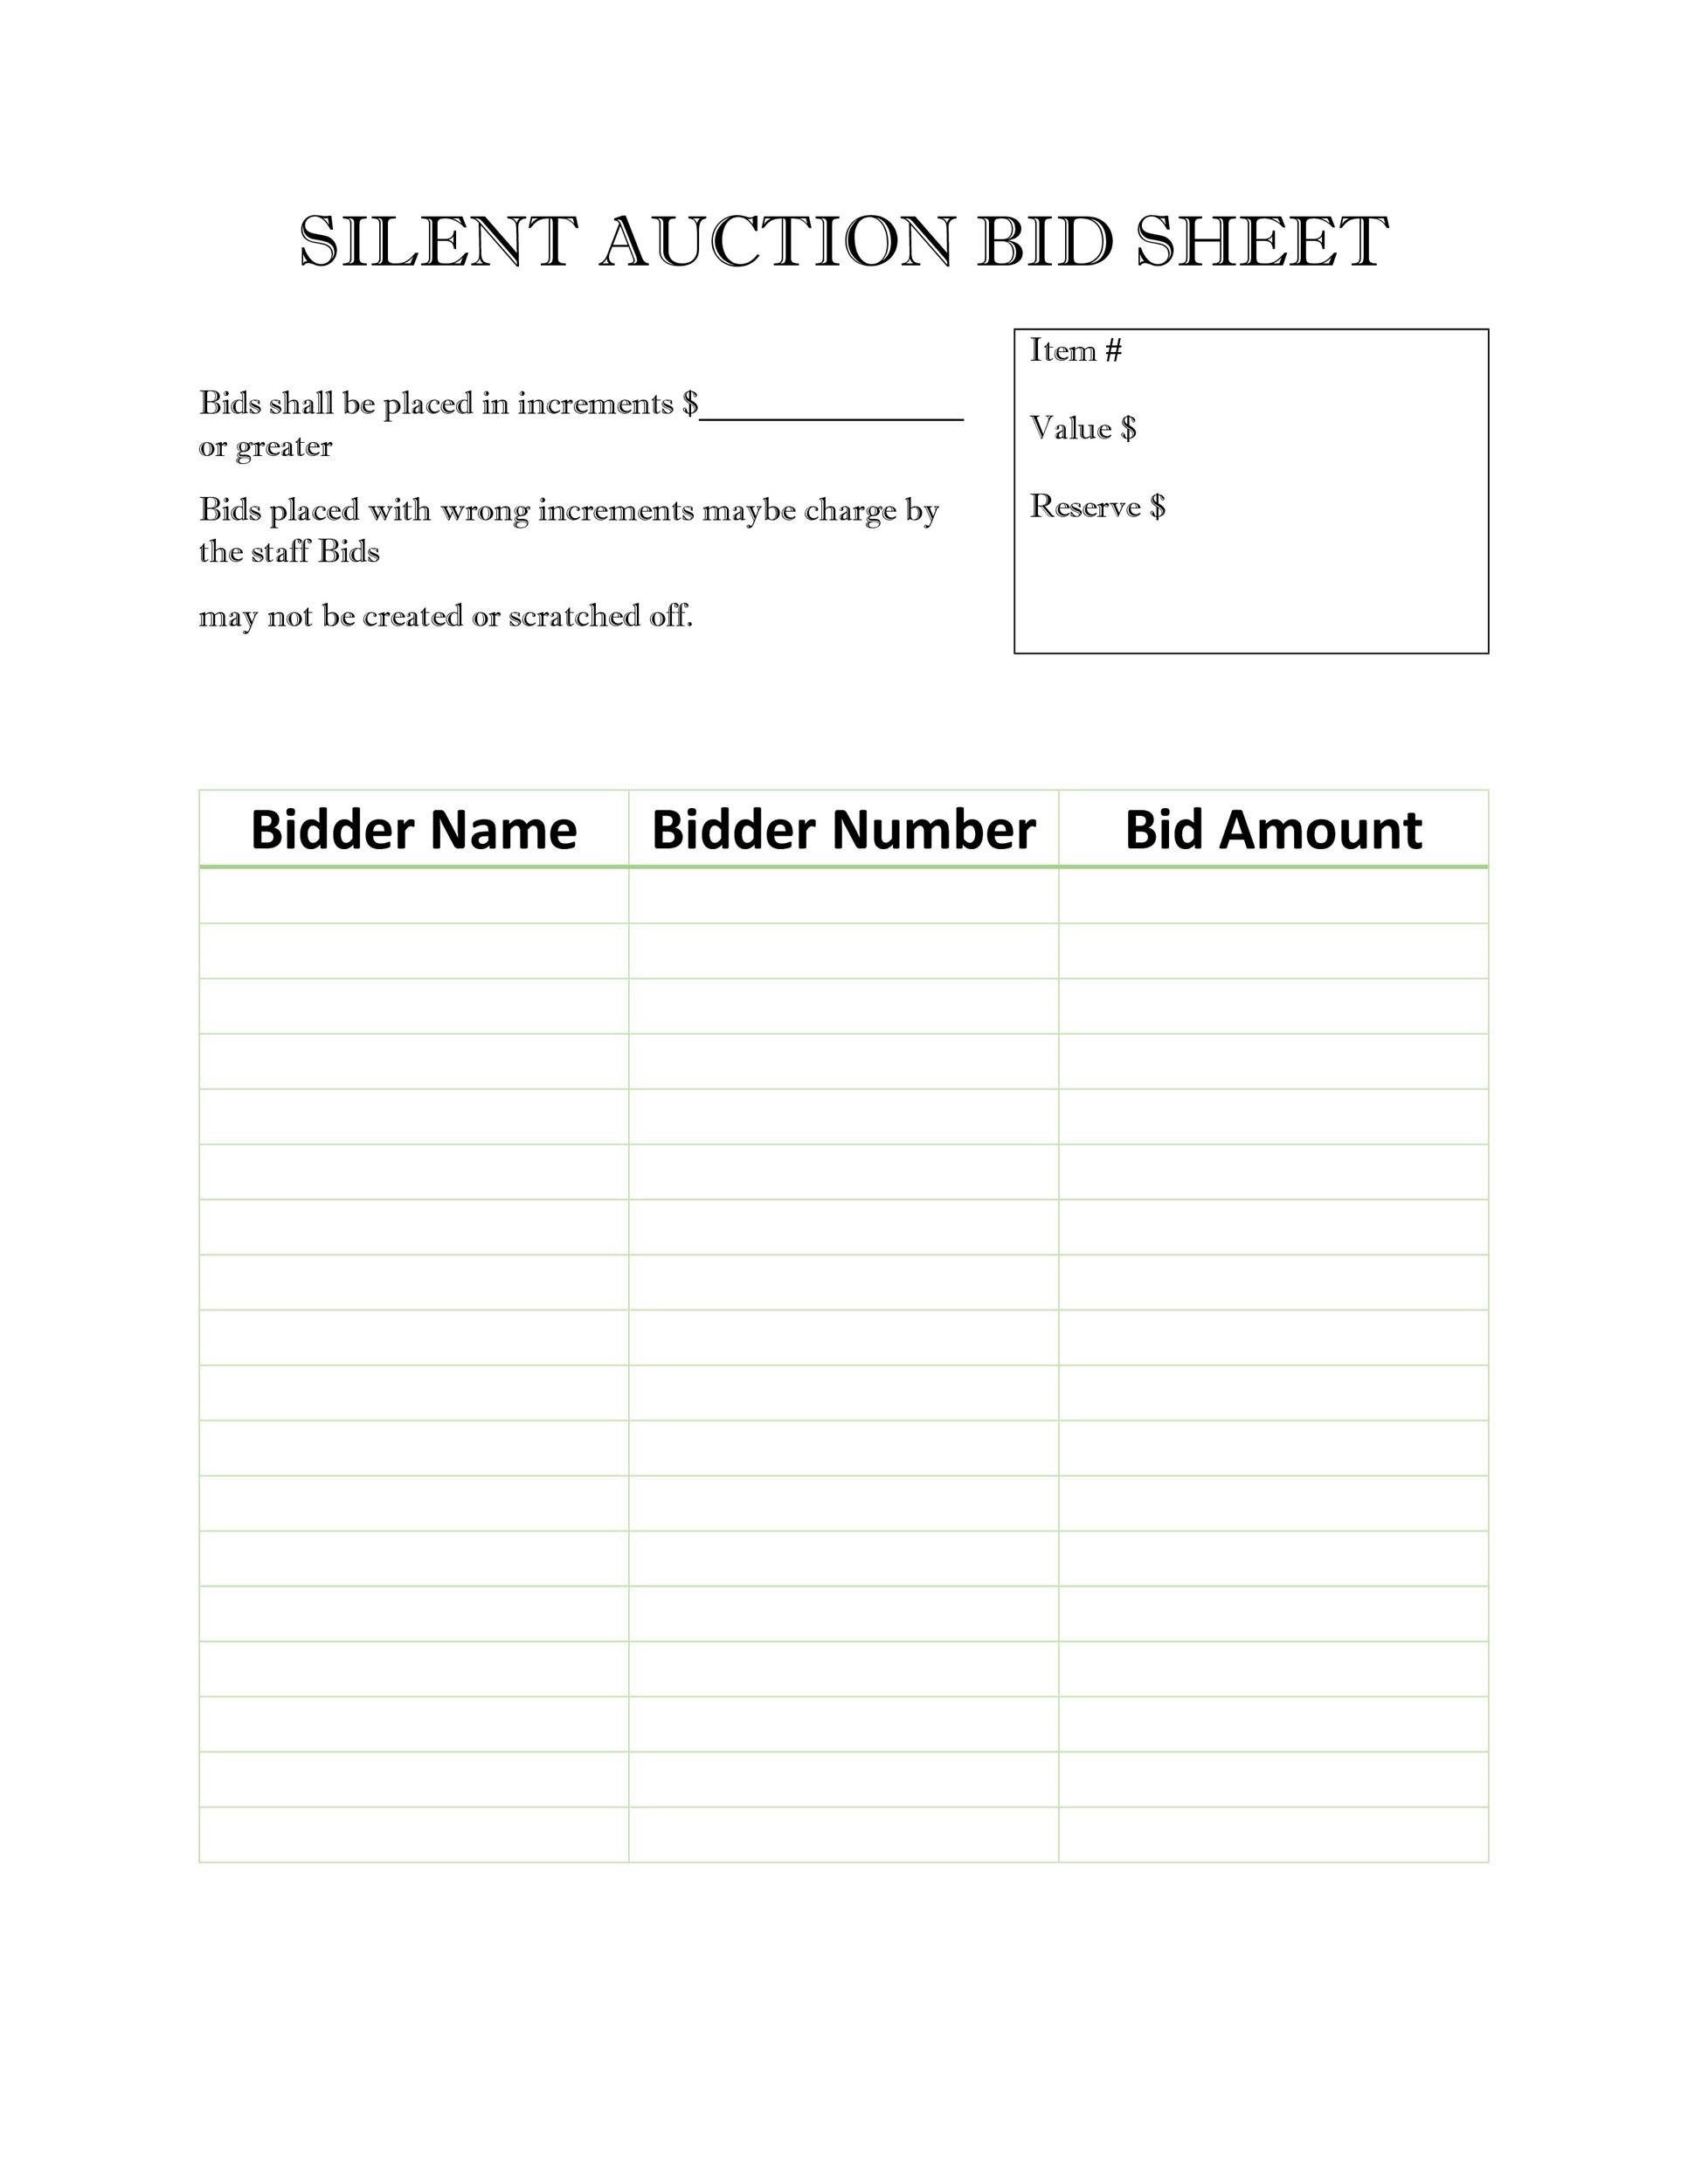 Free Silent Auction Bid Sheet 21